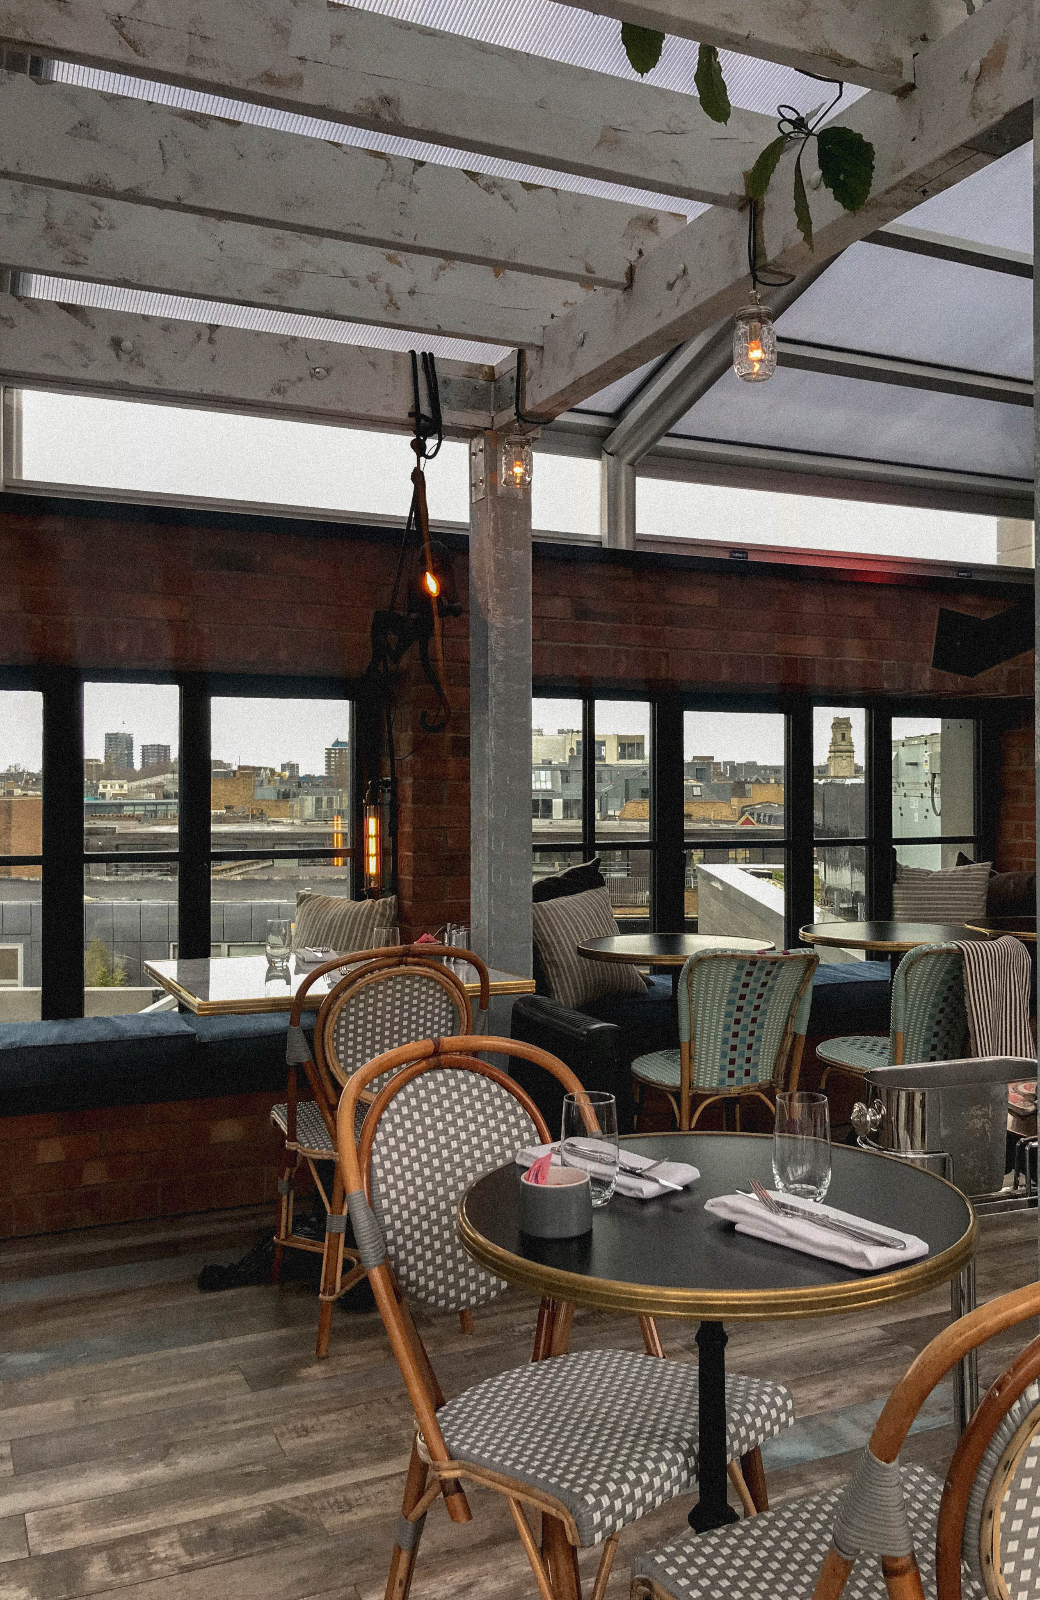 Where to stay, eat and have coffee in London | 3 places you have to visit